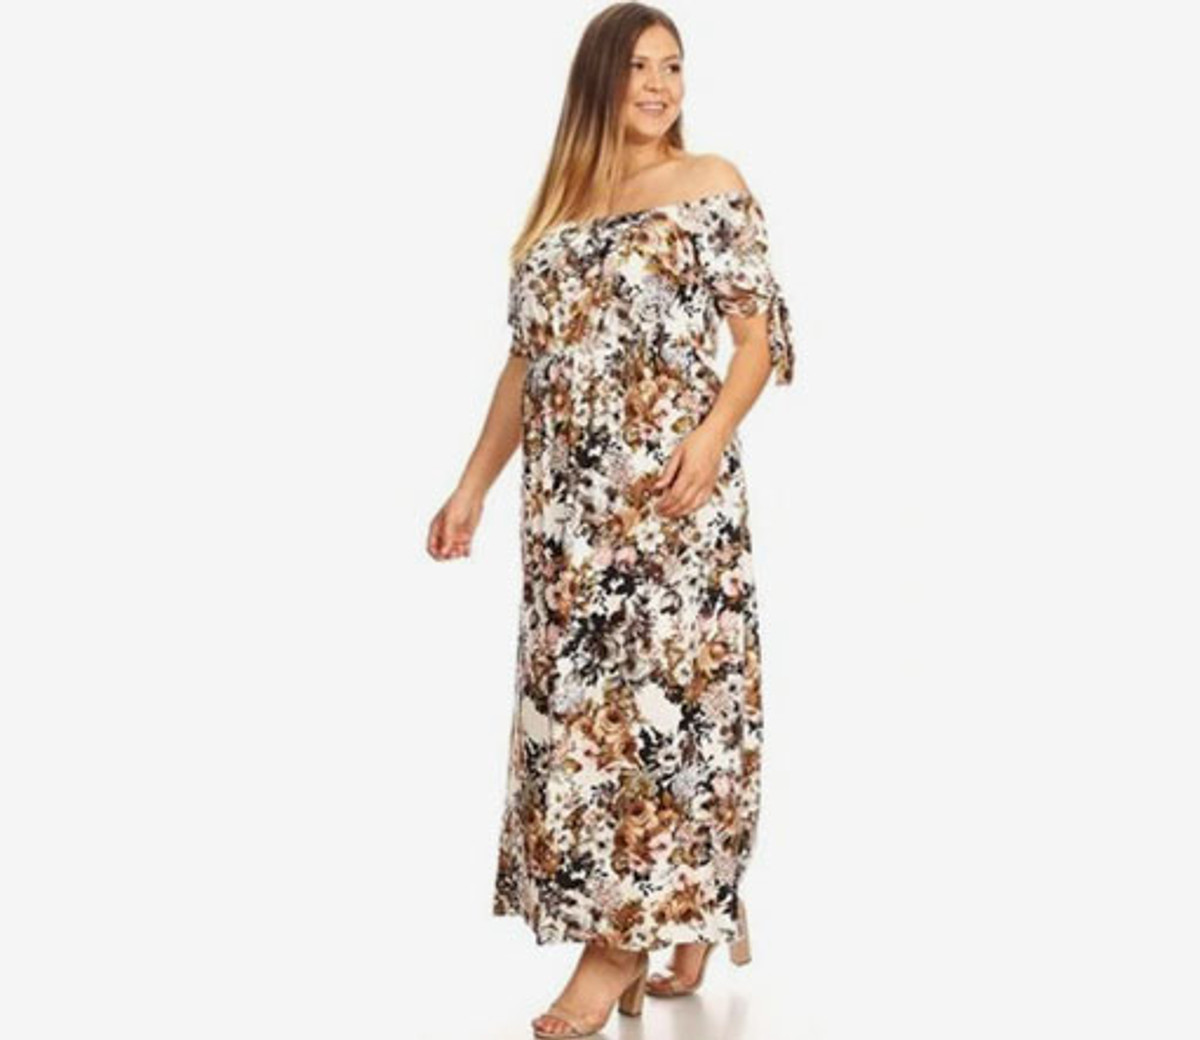 12f50d639e Spring Fashion Trends for Plus-Sized Women - VIBE Apparel Co.